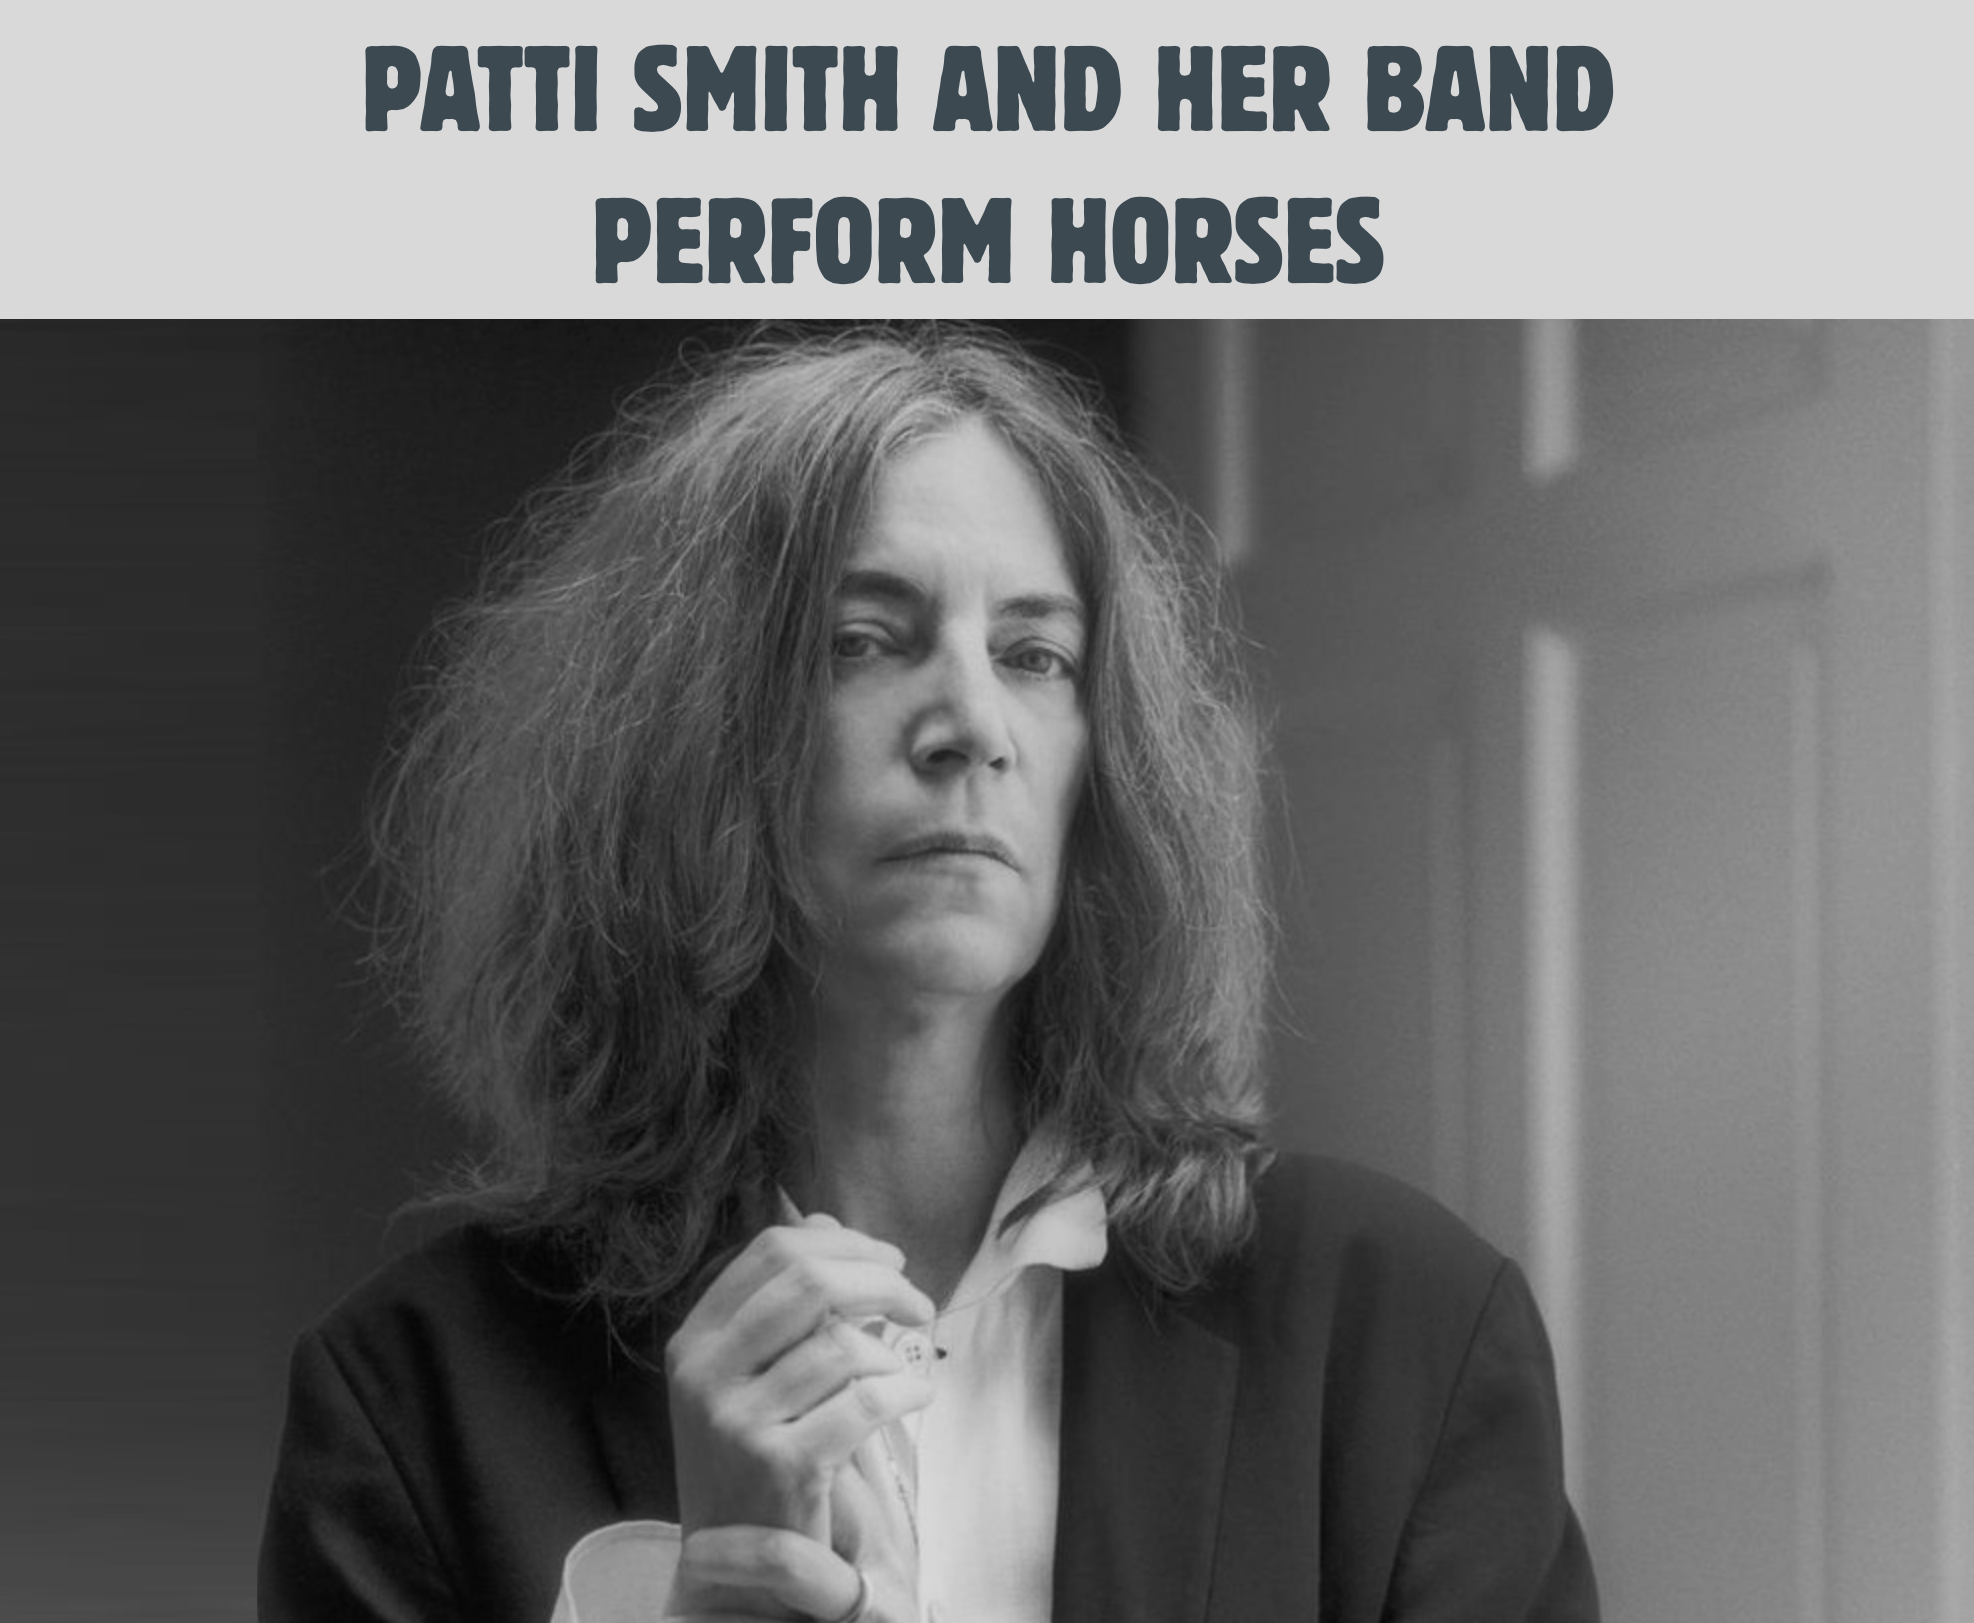 Patti Smith DTRH 2015